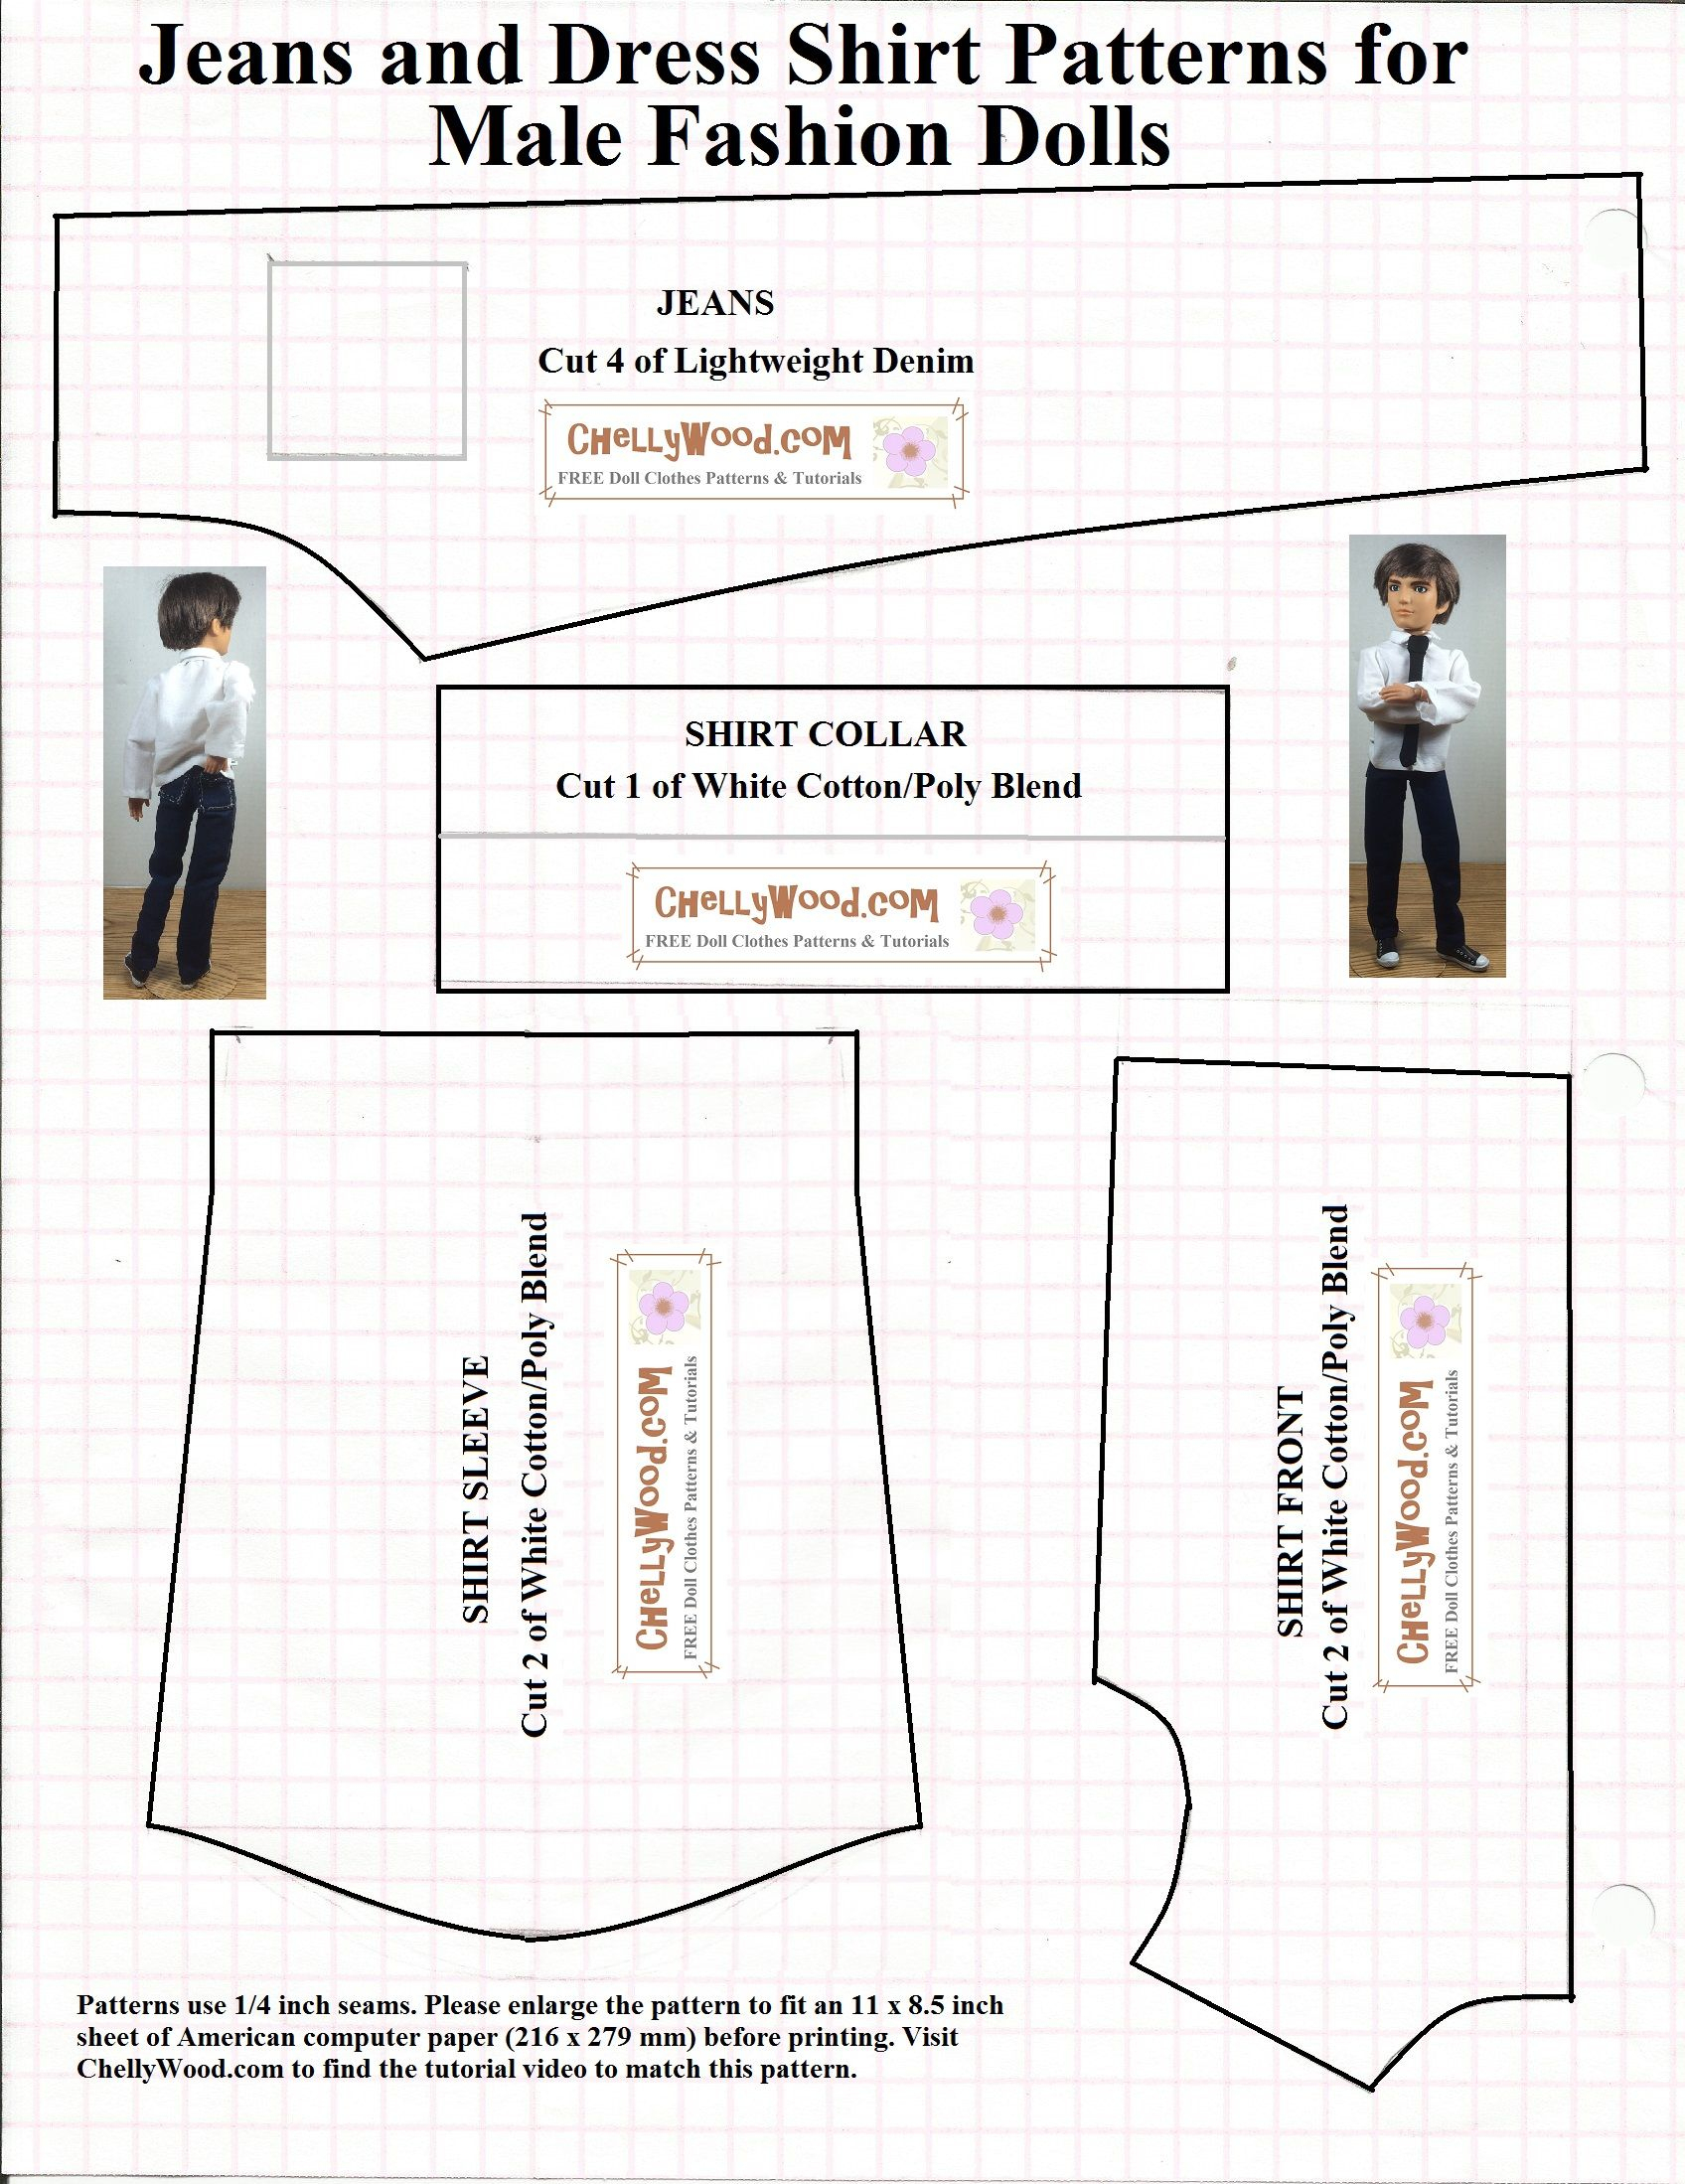 Free Printable Sewing Patterns For Dolls Of Many Shapes And Sizes - Free Printable Sewing Patterns